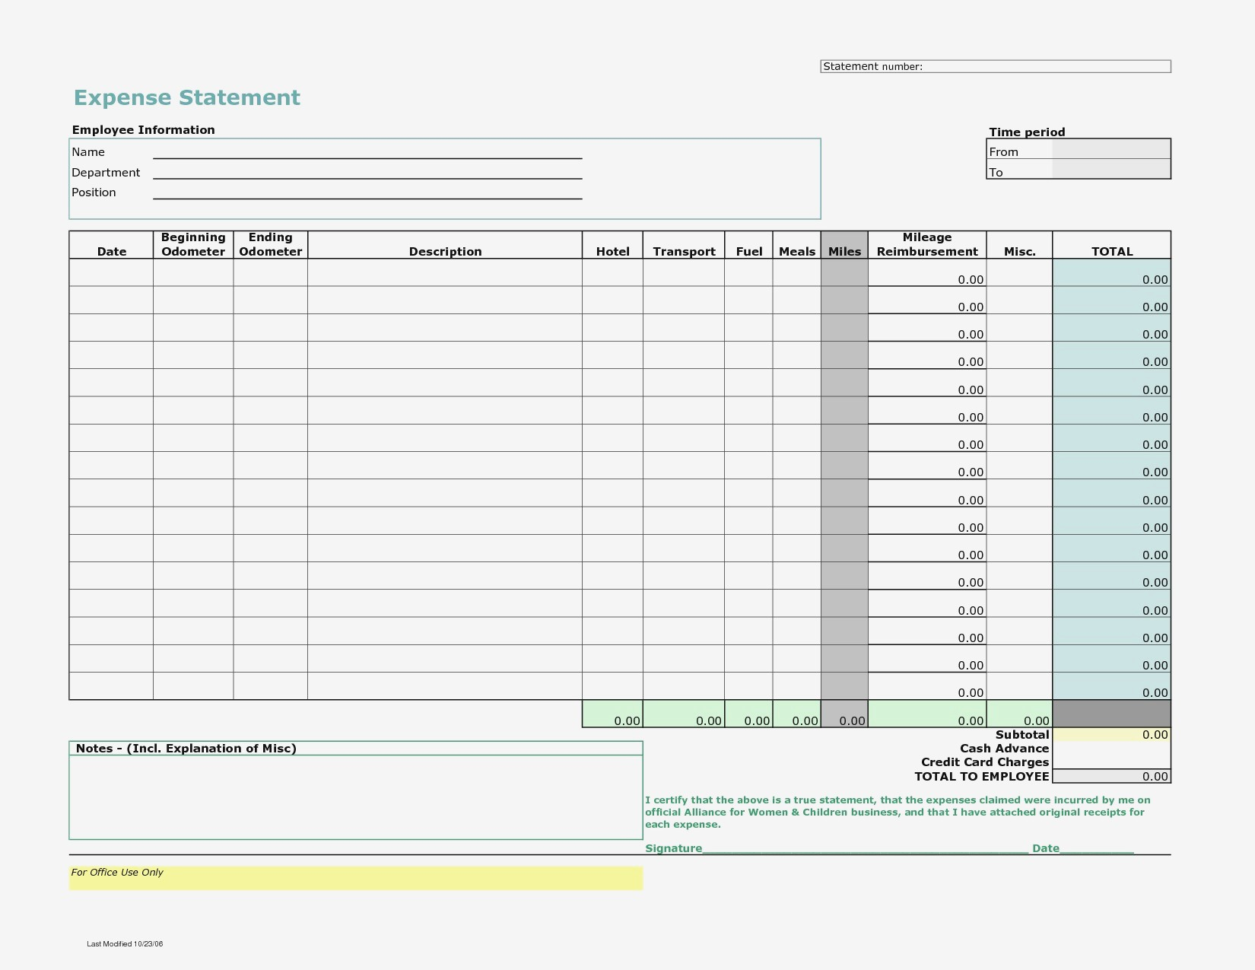 Expense Forms Templates Business Form Template Valid Trip Expenses In Business Expenses Form Template